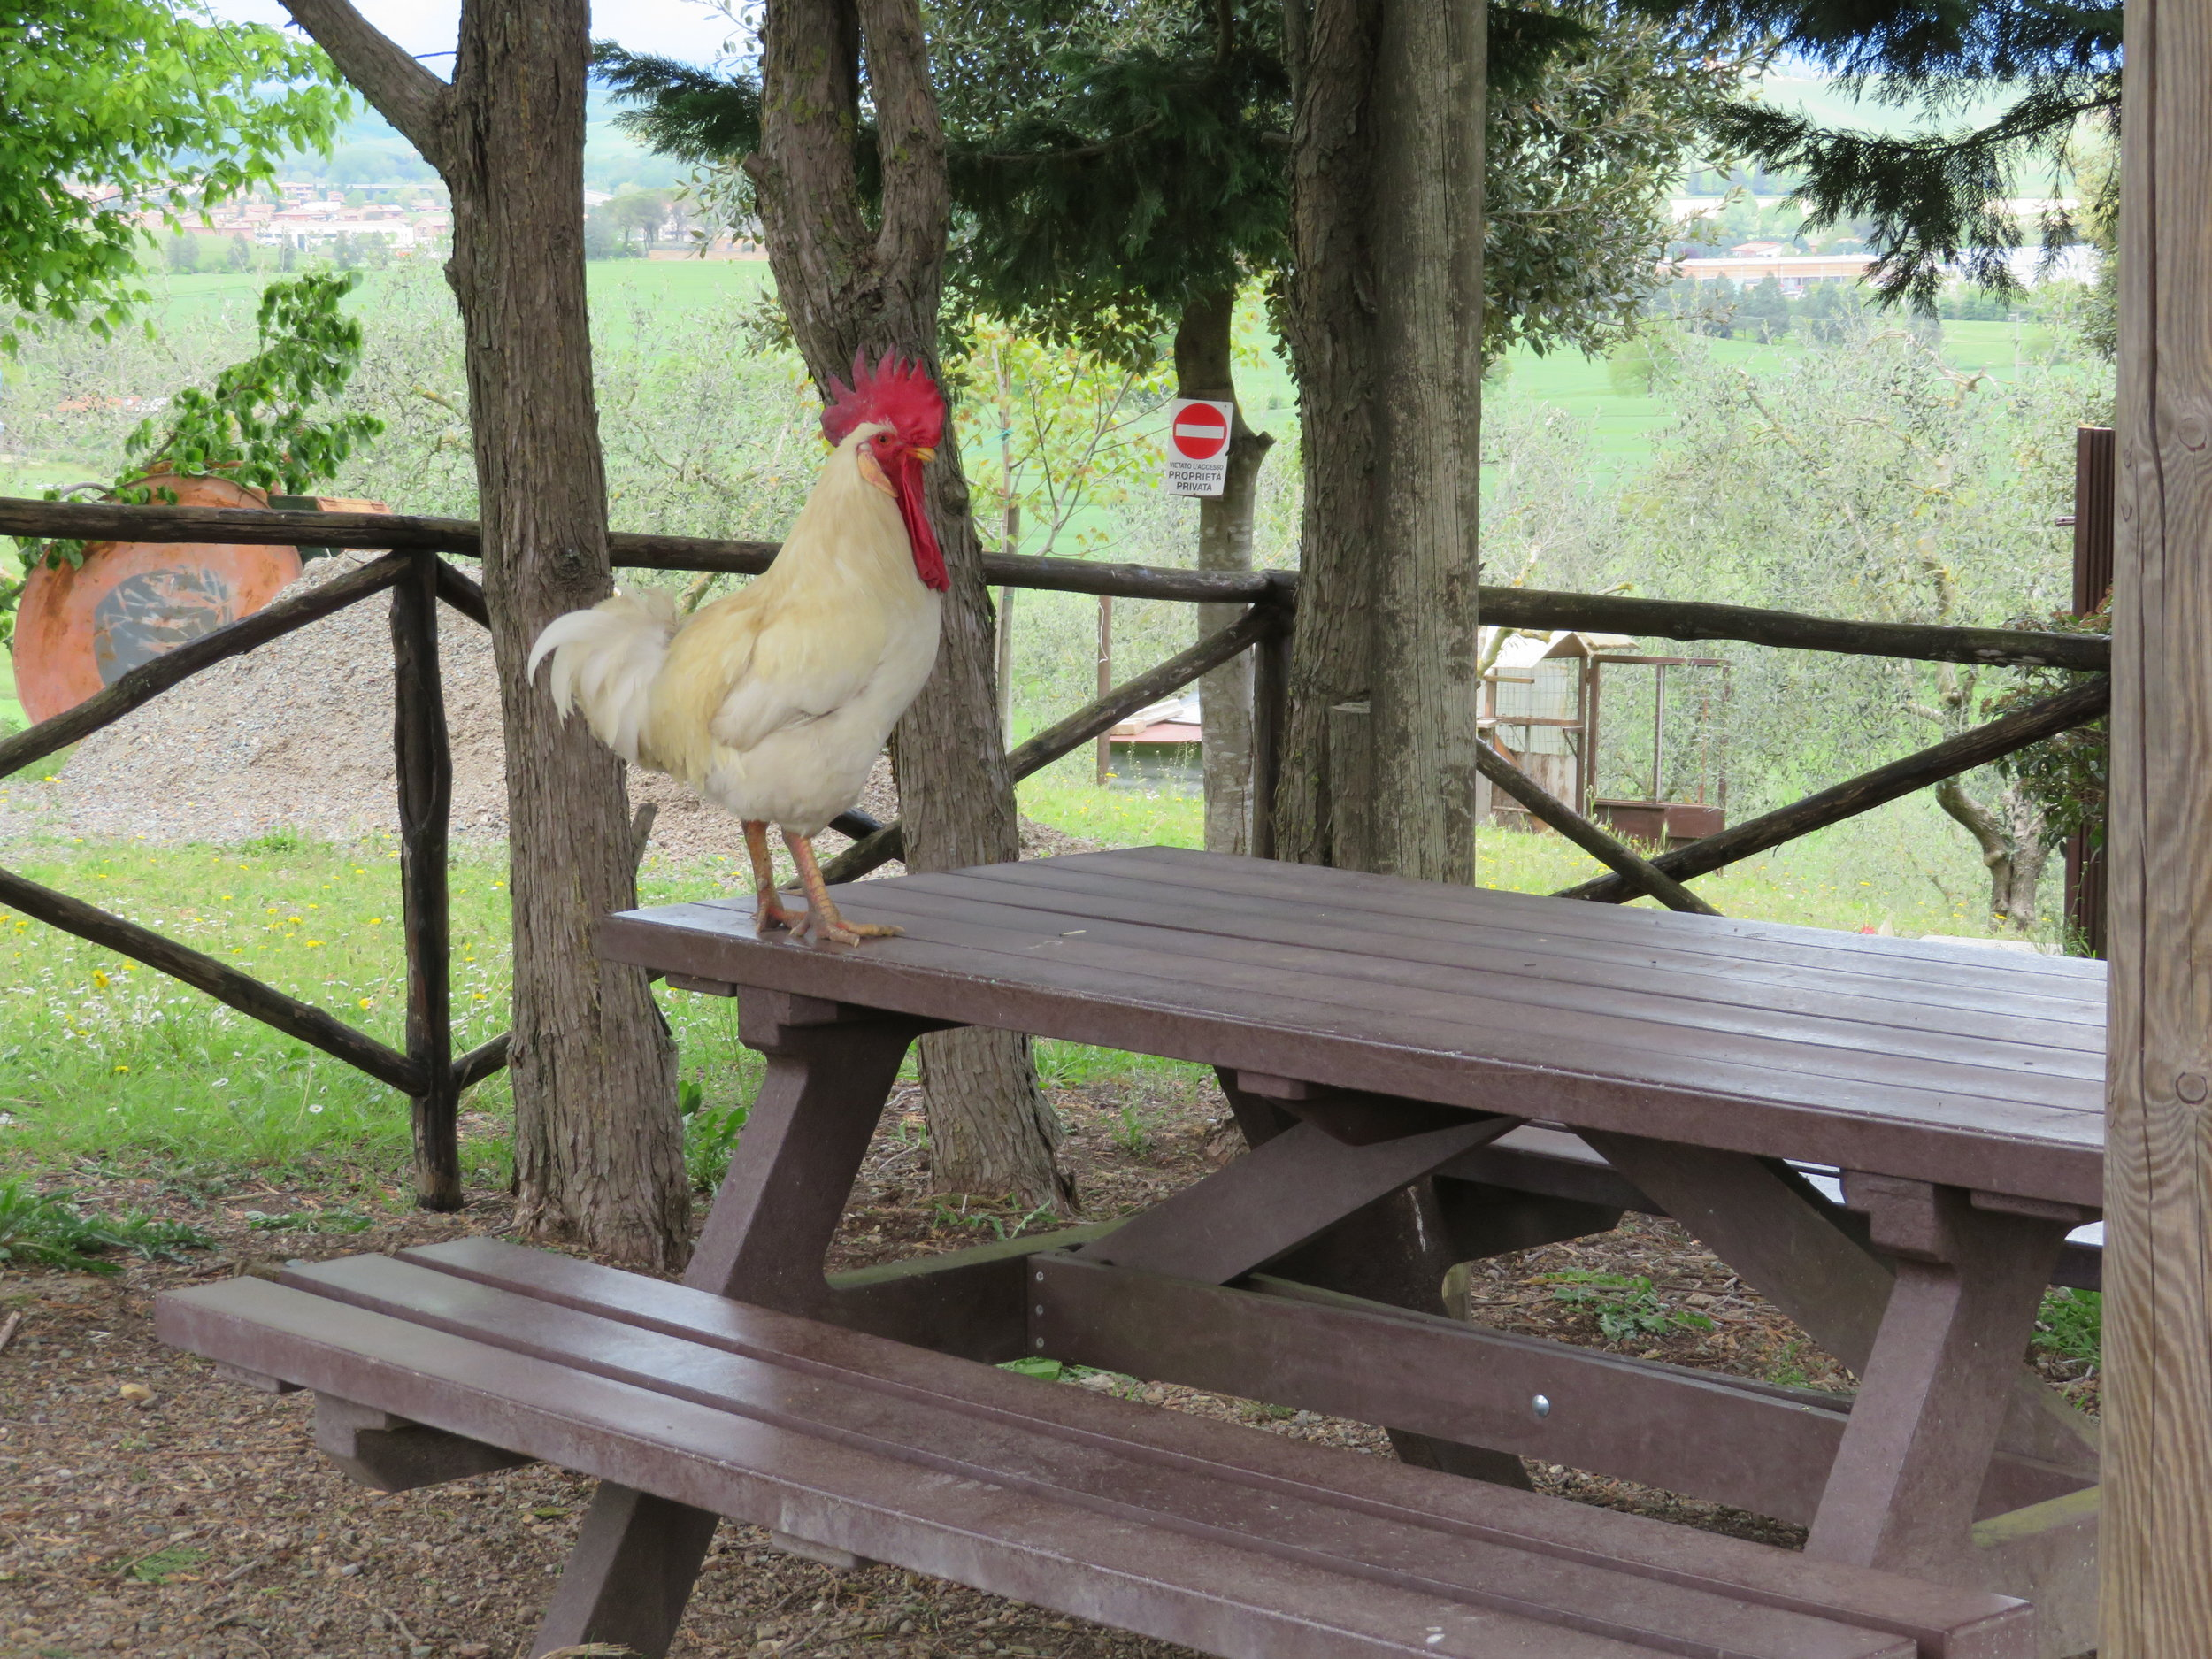 We shared the rest stop with chickens …